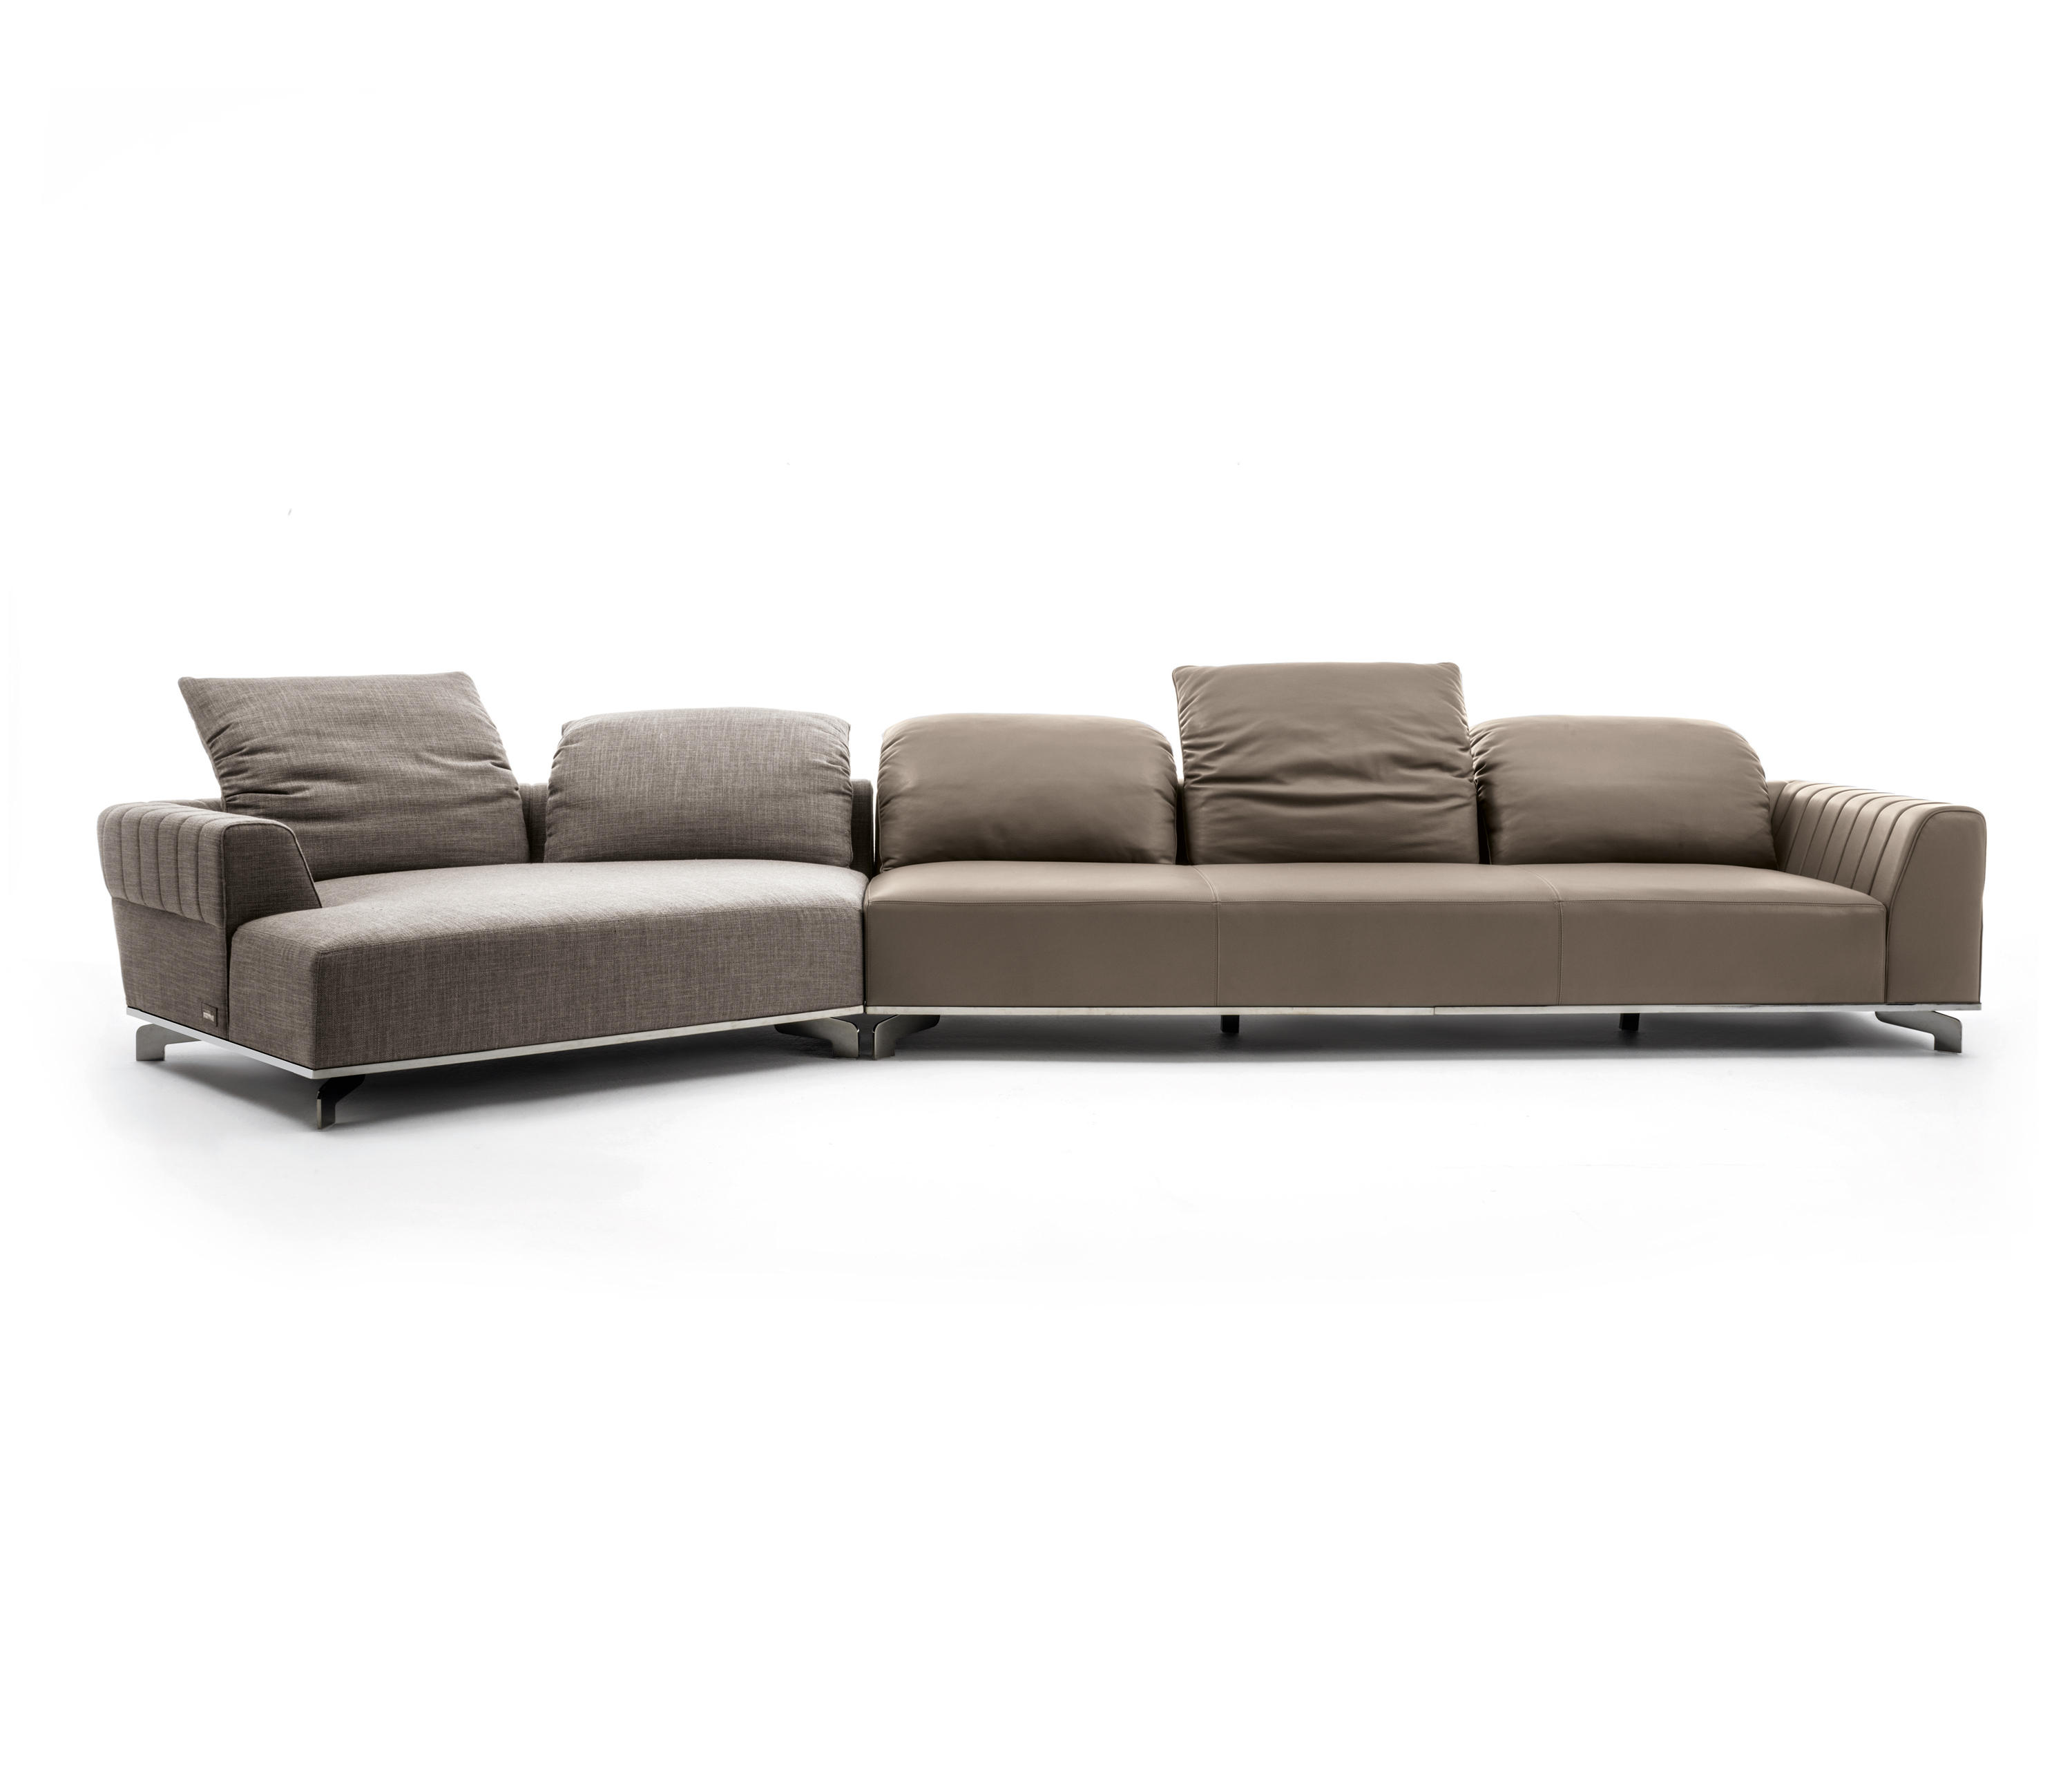 Sofas From Longhi S P A